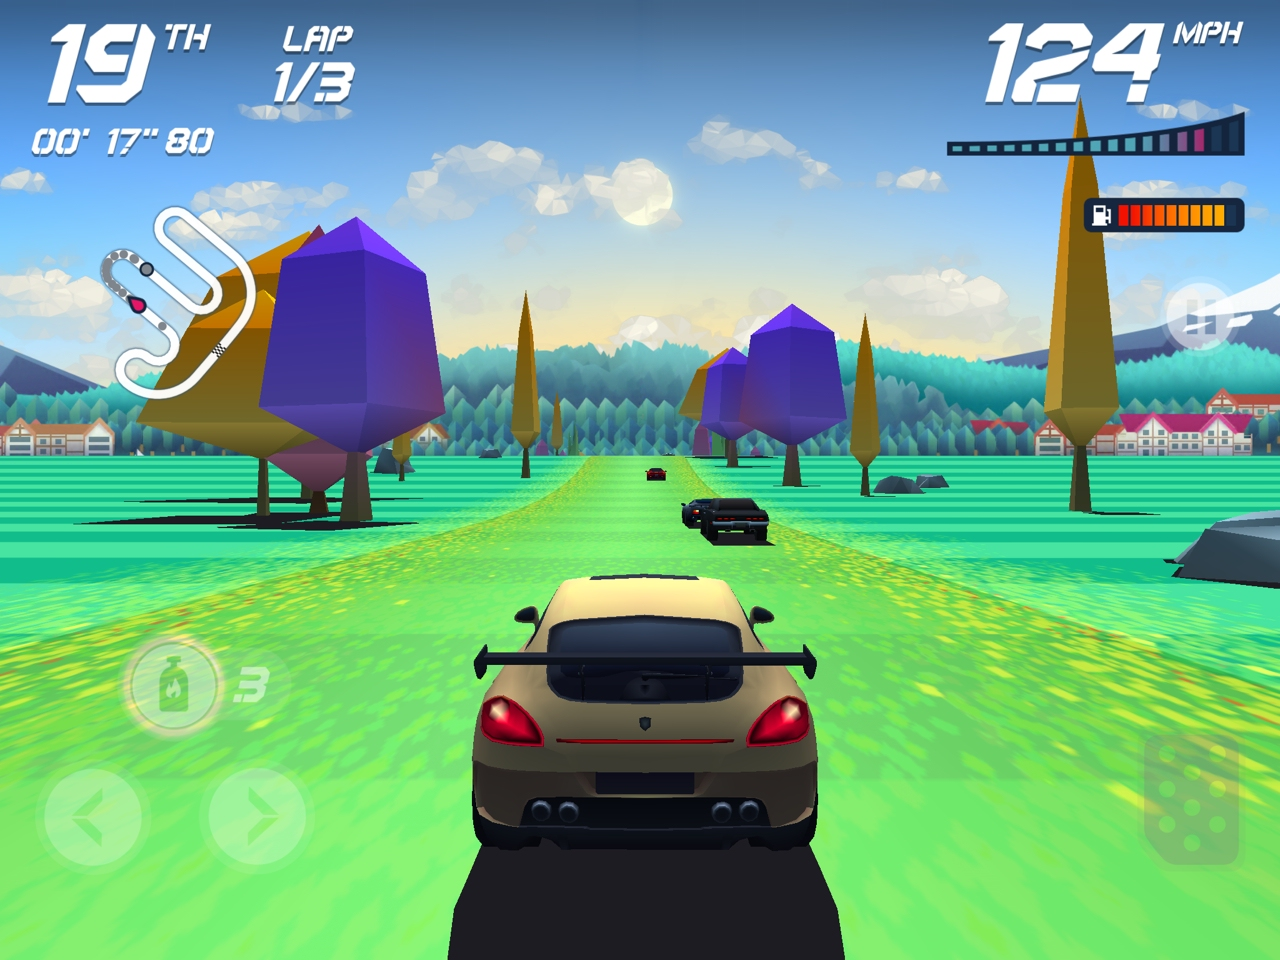 [Update] Exceptional Outrun-like racer Horizon Chase updated with new Hawaii cup and more